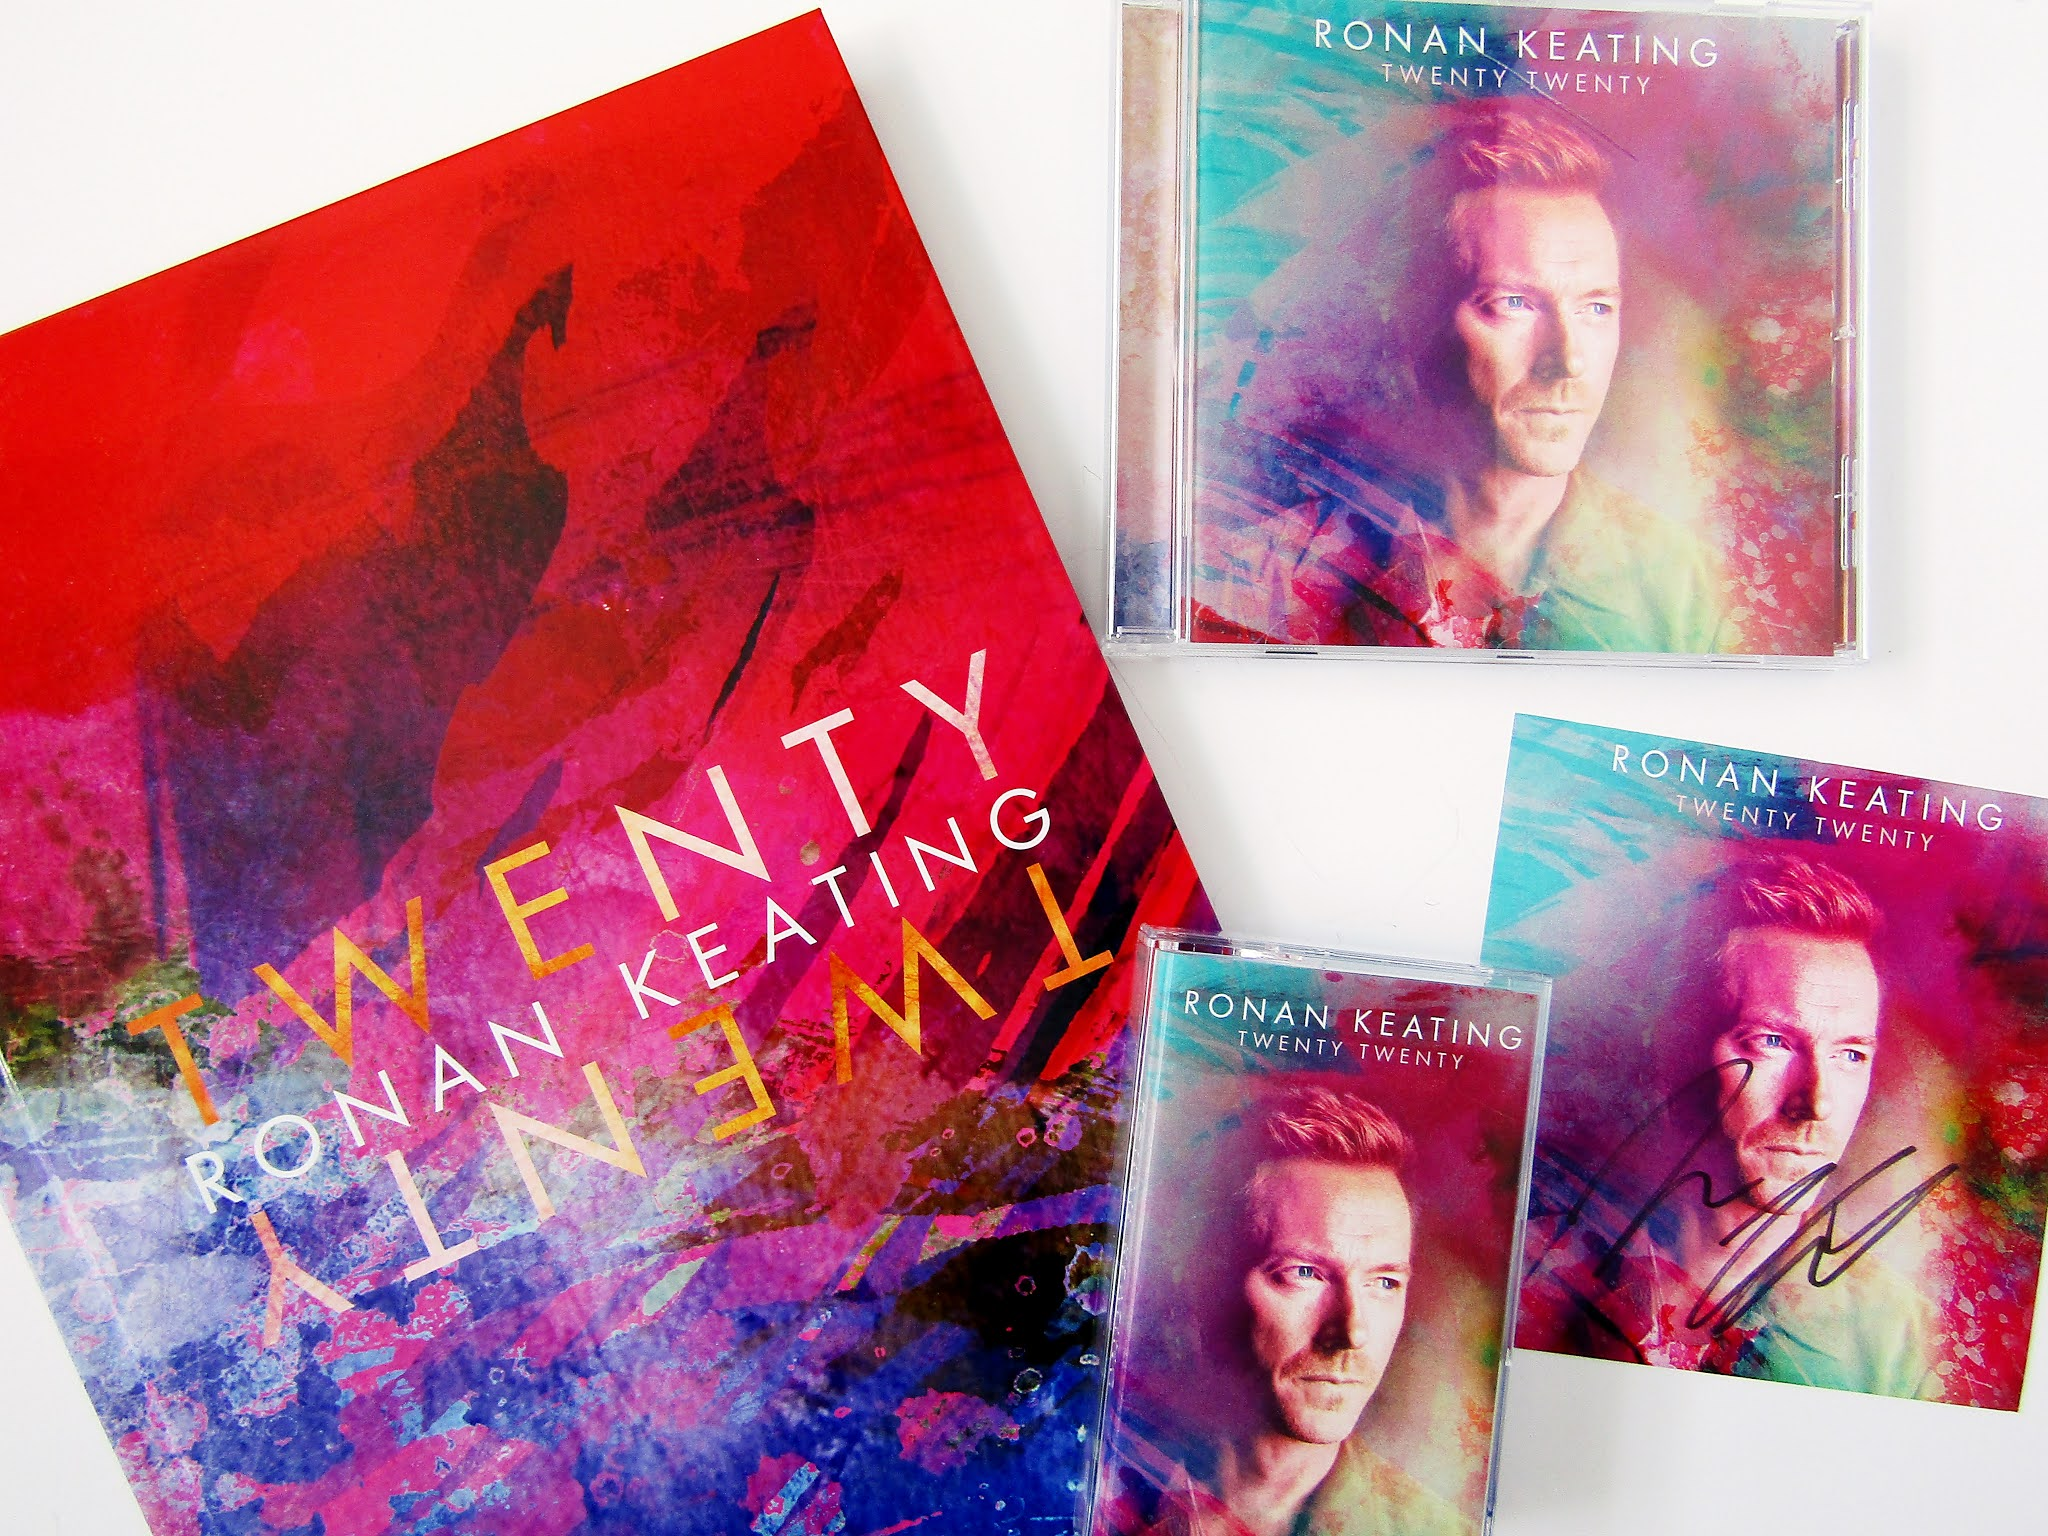 A flatlay photo taken from above of various Ronan Keating Twenty Twenty albums. The photo shows an A4 photo book collector's album, a CD, cassette tape, and a signed card featuring a purple, blue, and red design, the words 'Ronan Keating Twenty Twenty' in gold,  and Ronan Keating's face on them.